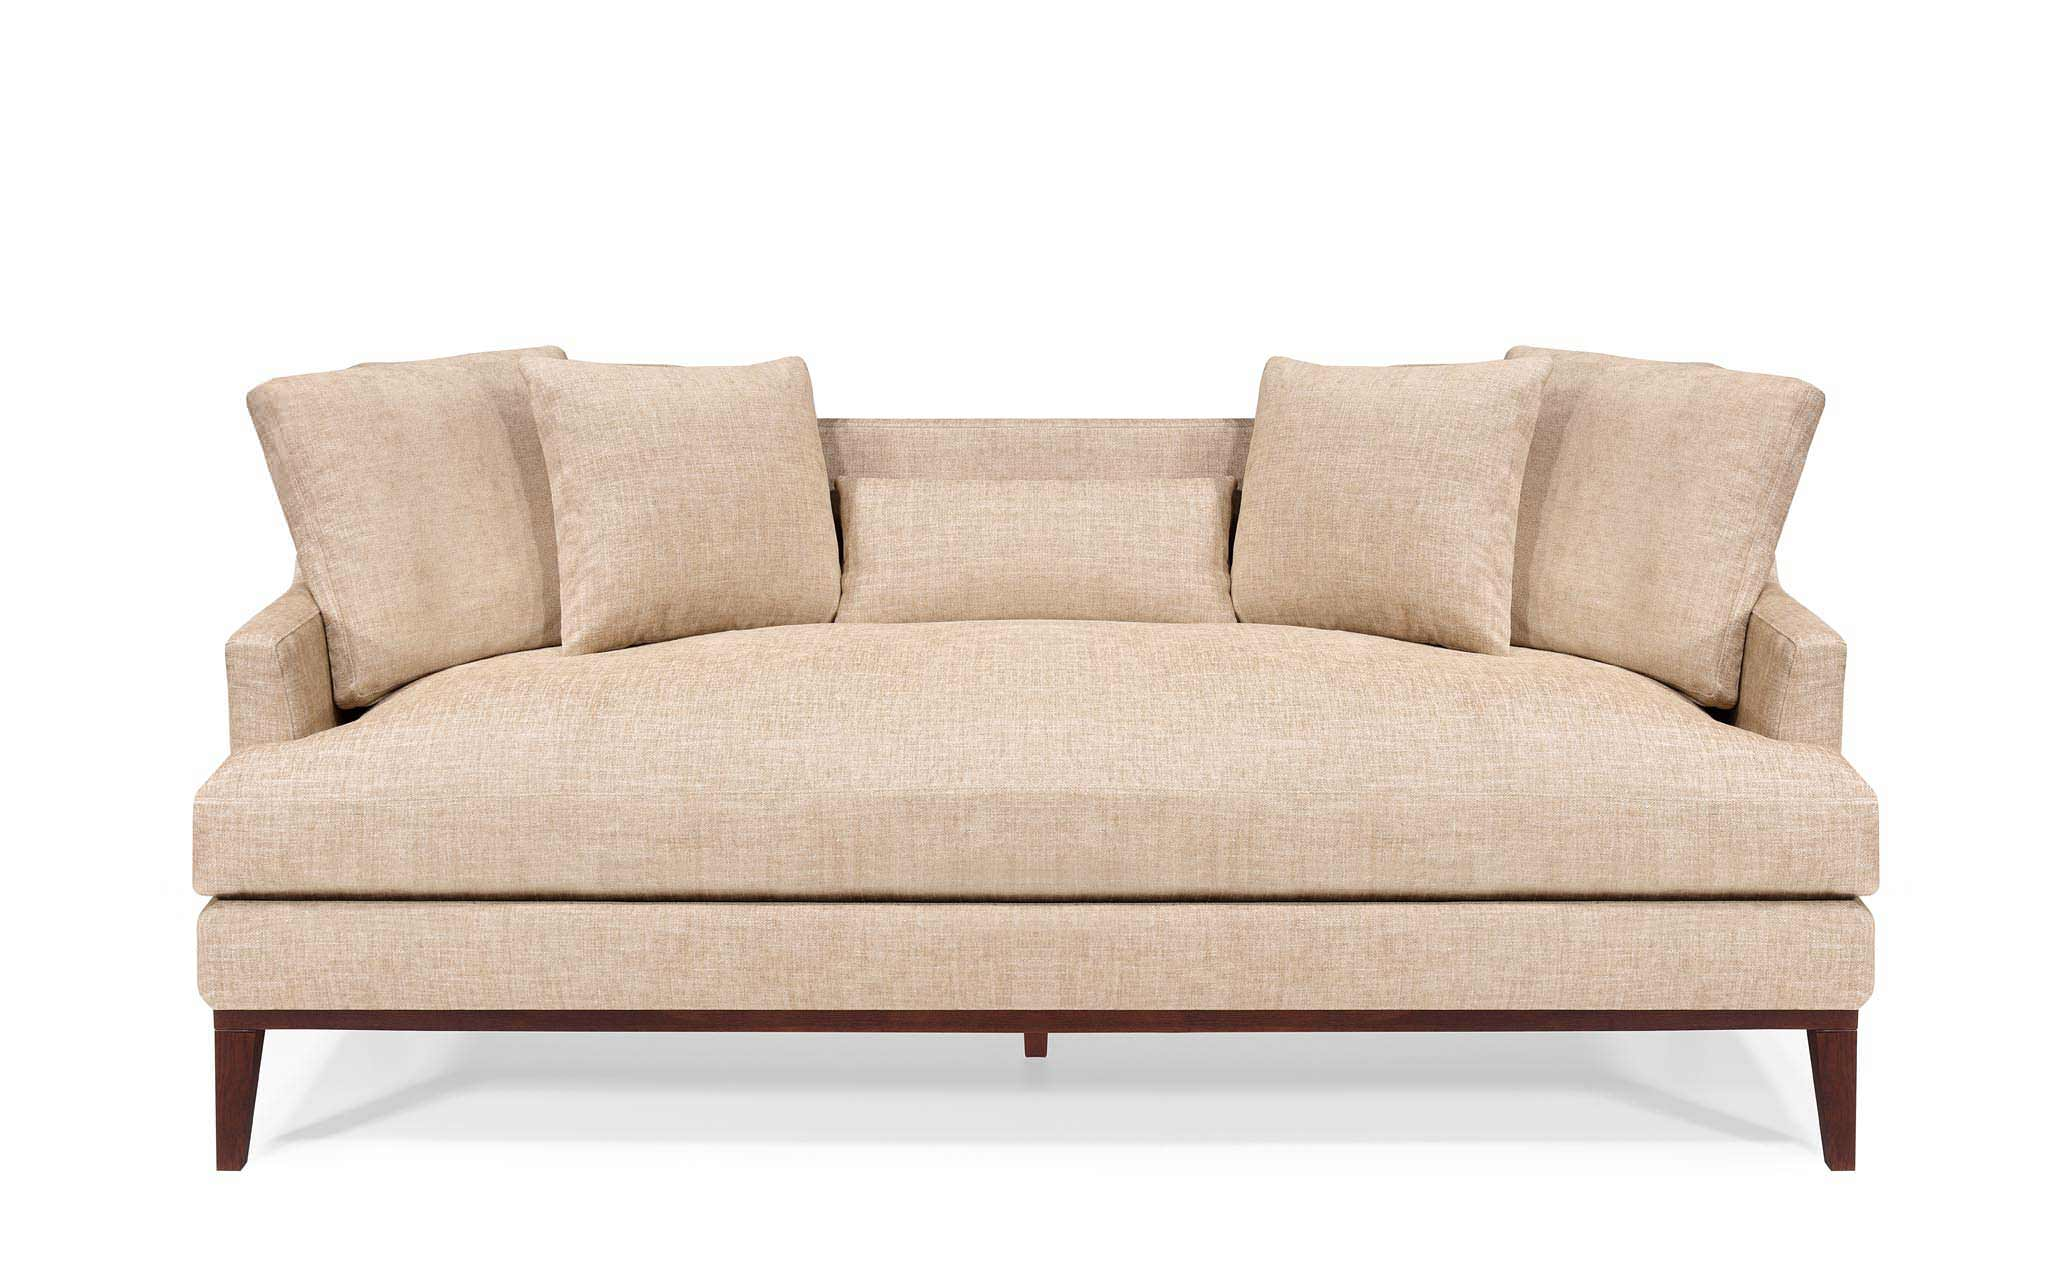 Classically elegant sofa - Products